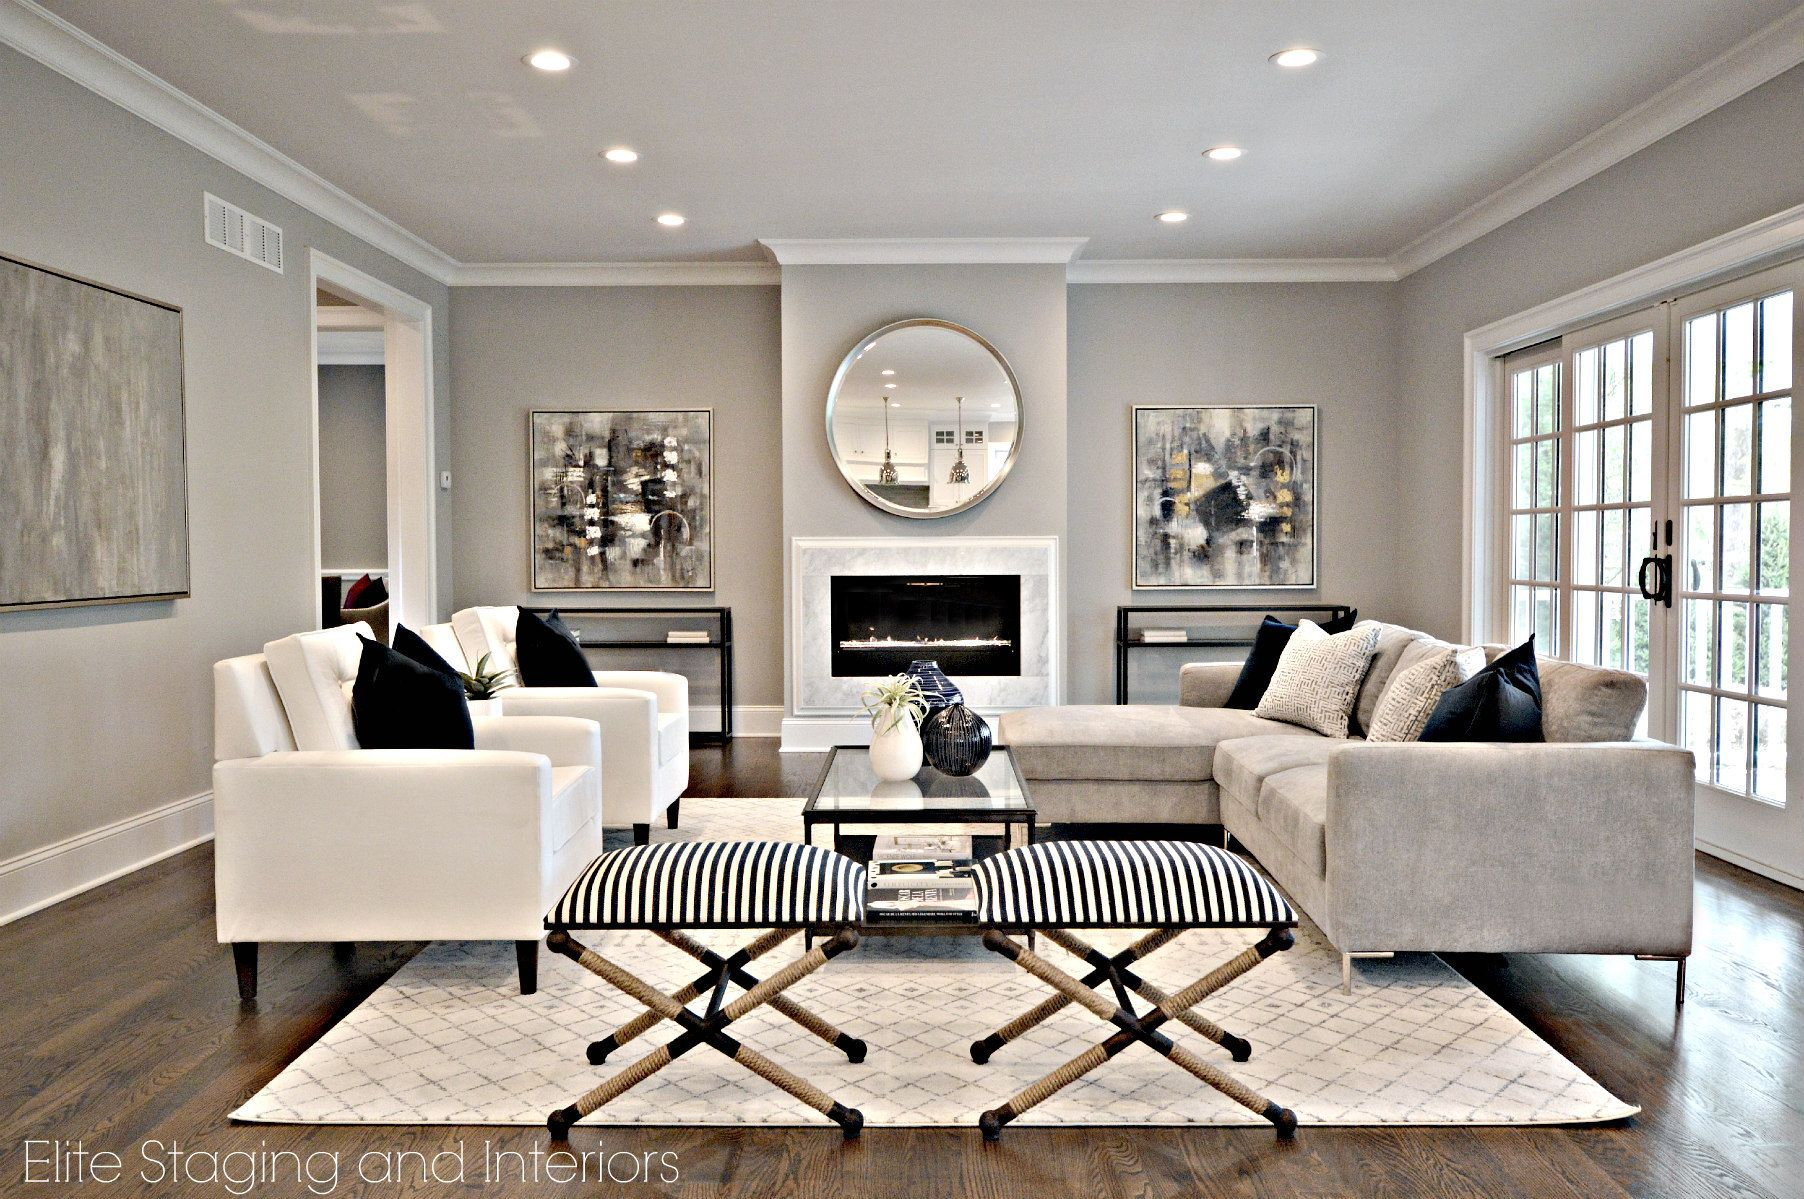 Fifty Shades of Gray Freed - Top Gray Paint Colors #indoorpaintcolors